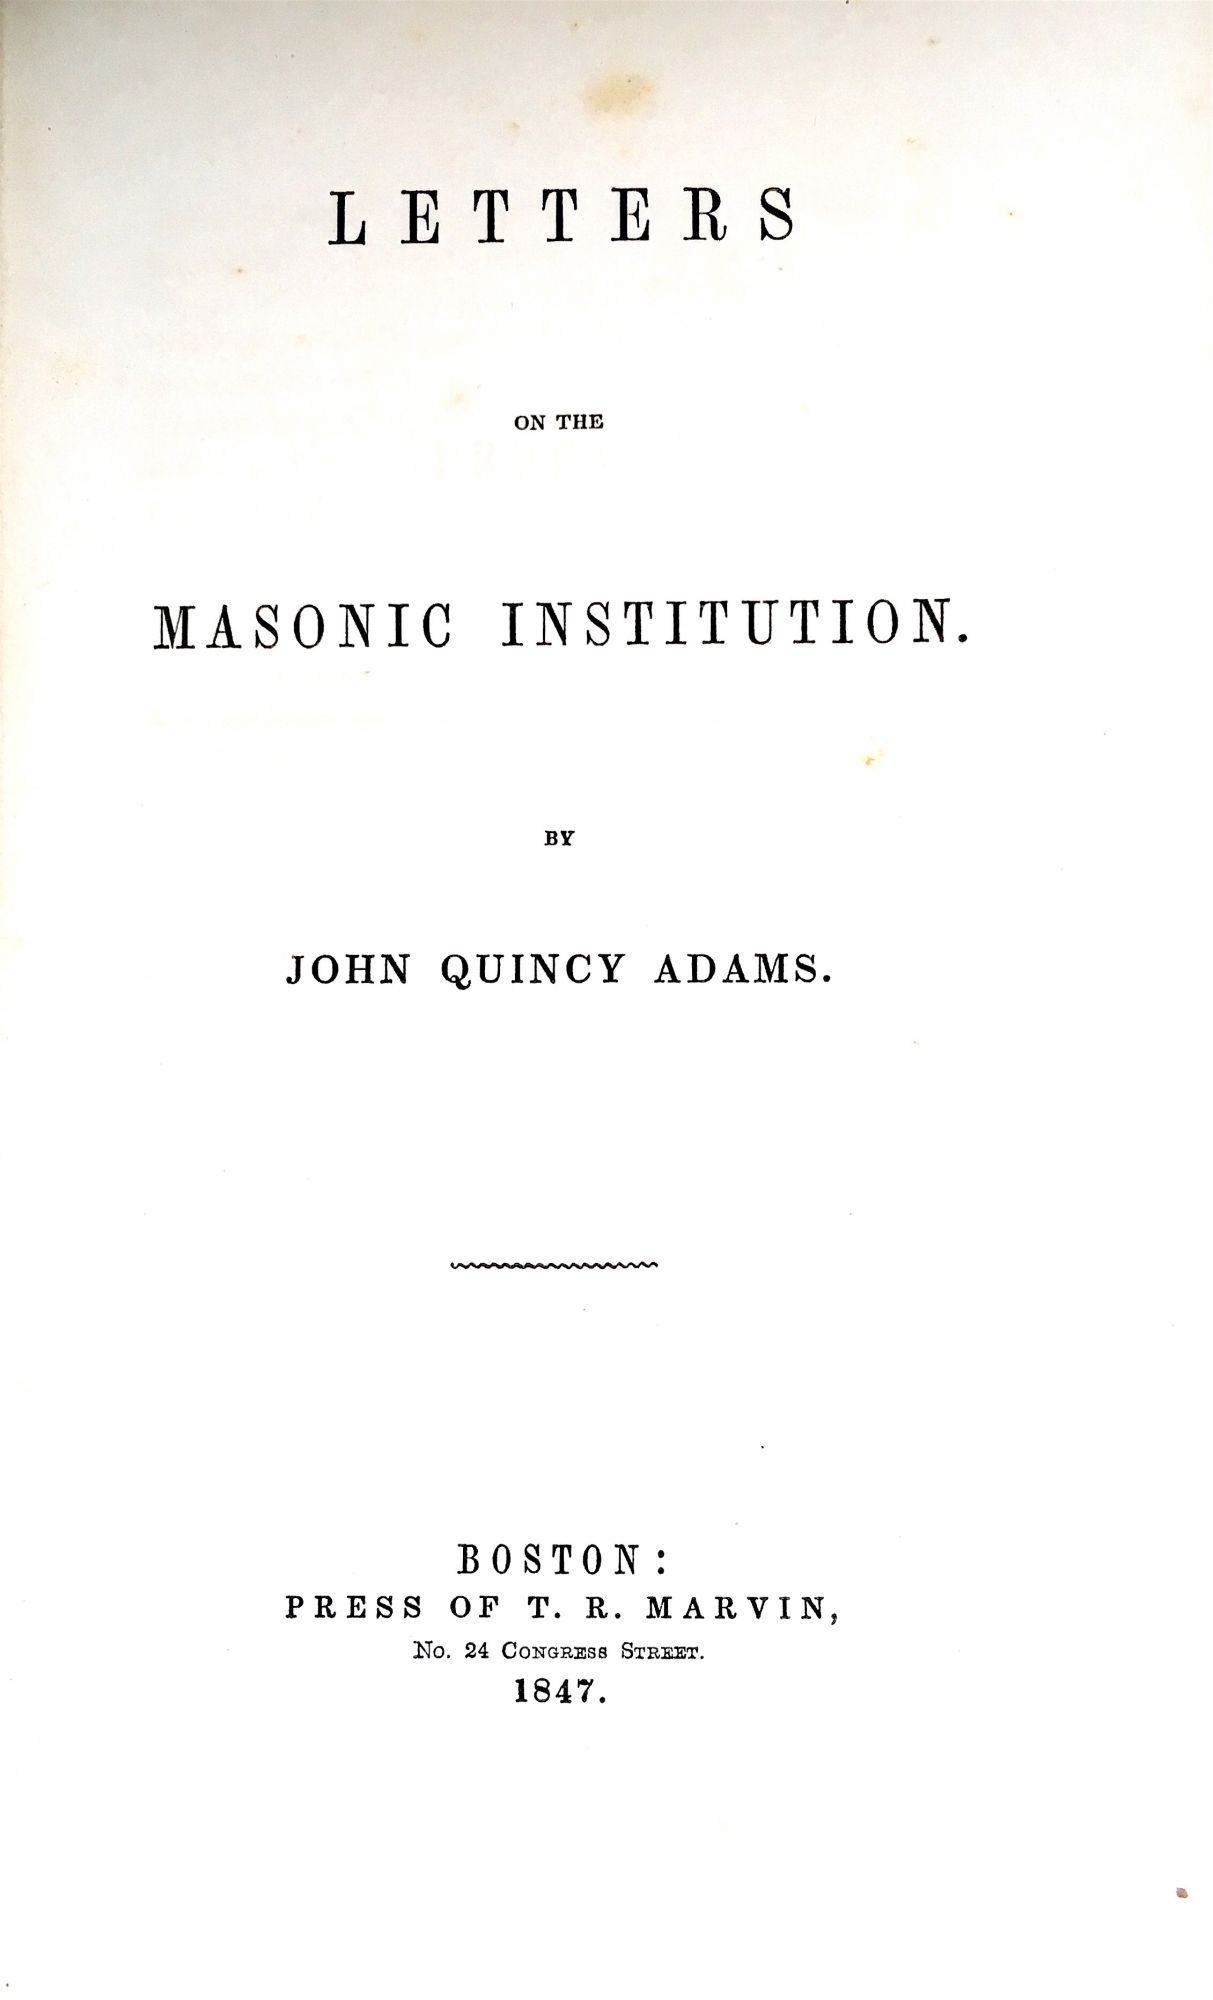 LETTERS ON THE MASONIC INSTITUTION. John Quincy Adams.